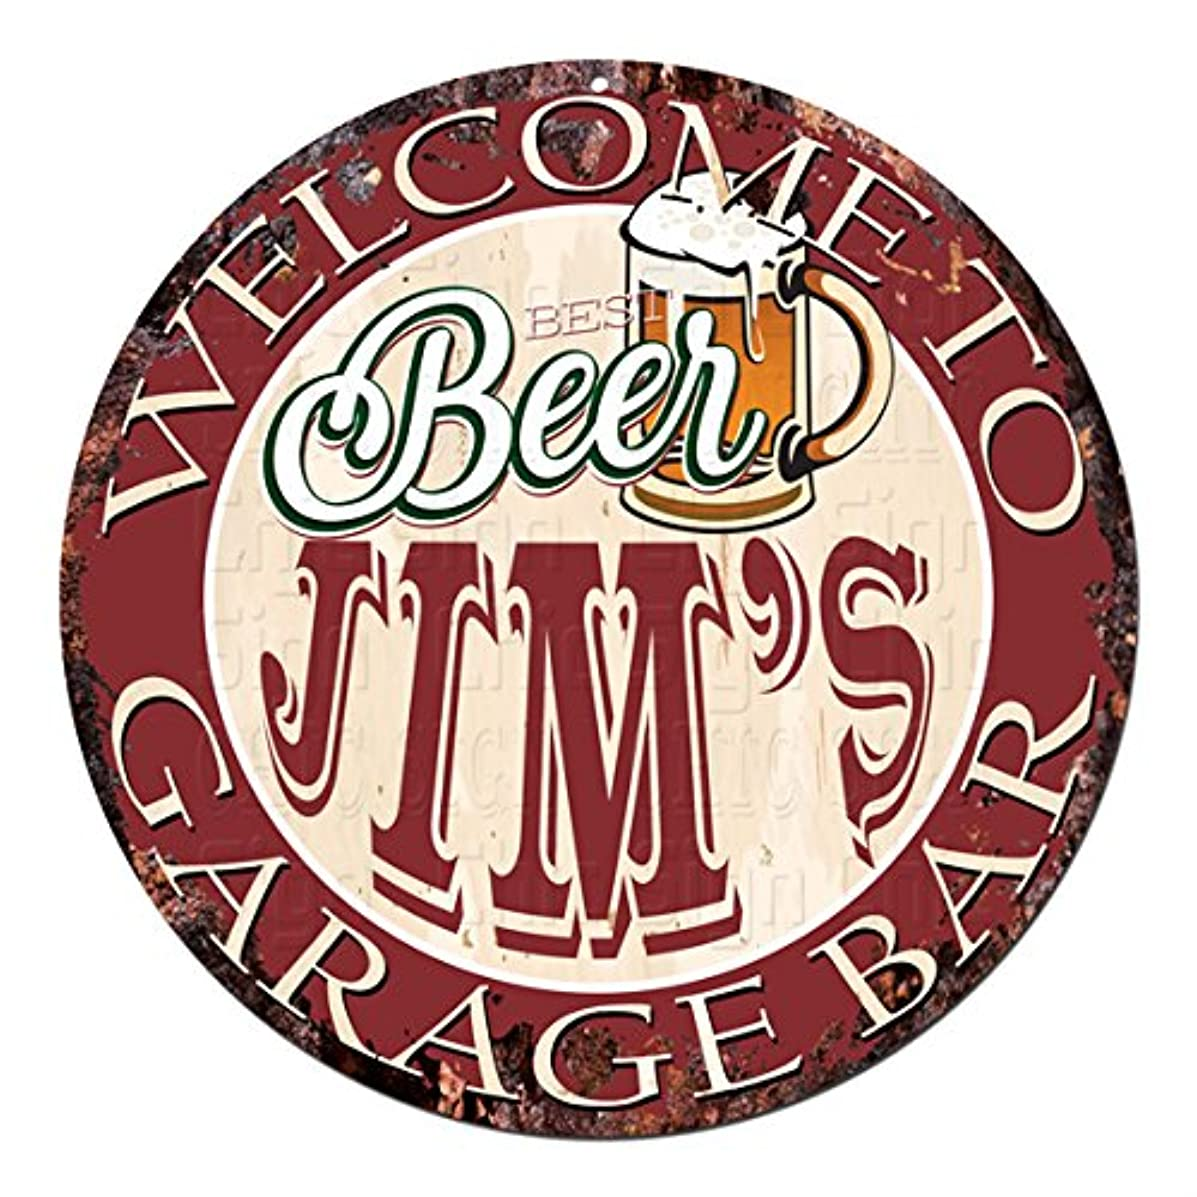 Welcome to Best Beer JIM'S GARAGE BAR Chic Tin Sign Rustic Shabby Vintage style Retro Kitchen Bar Pub Coffee Shop man cave Decor Gift Ideas